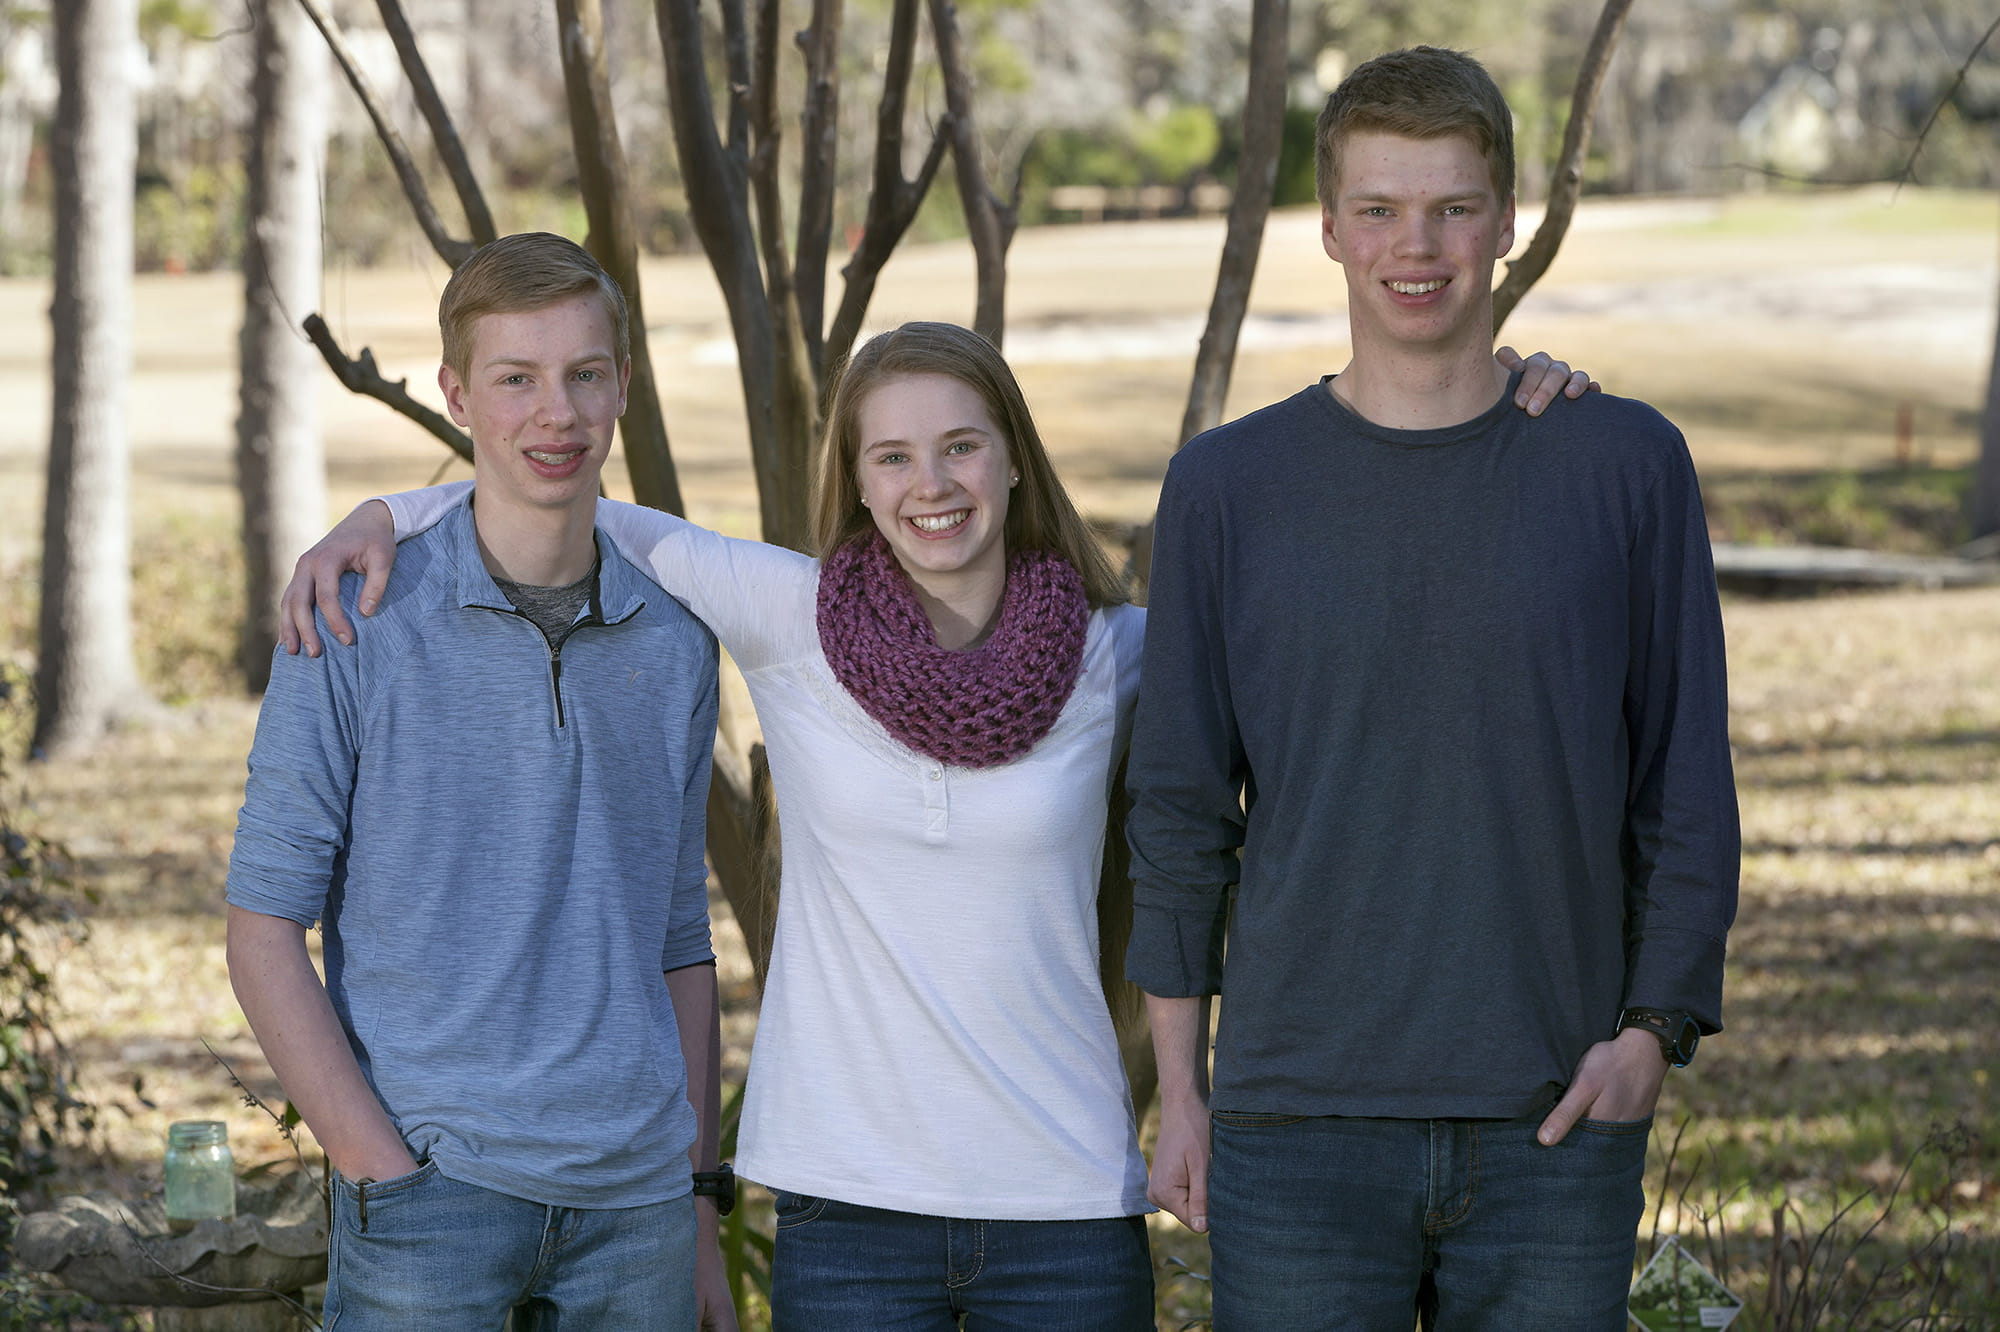 16-year-old triplets stand for photo in their back yard